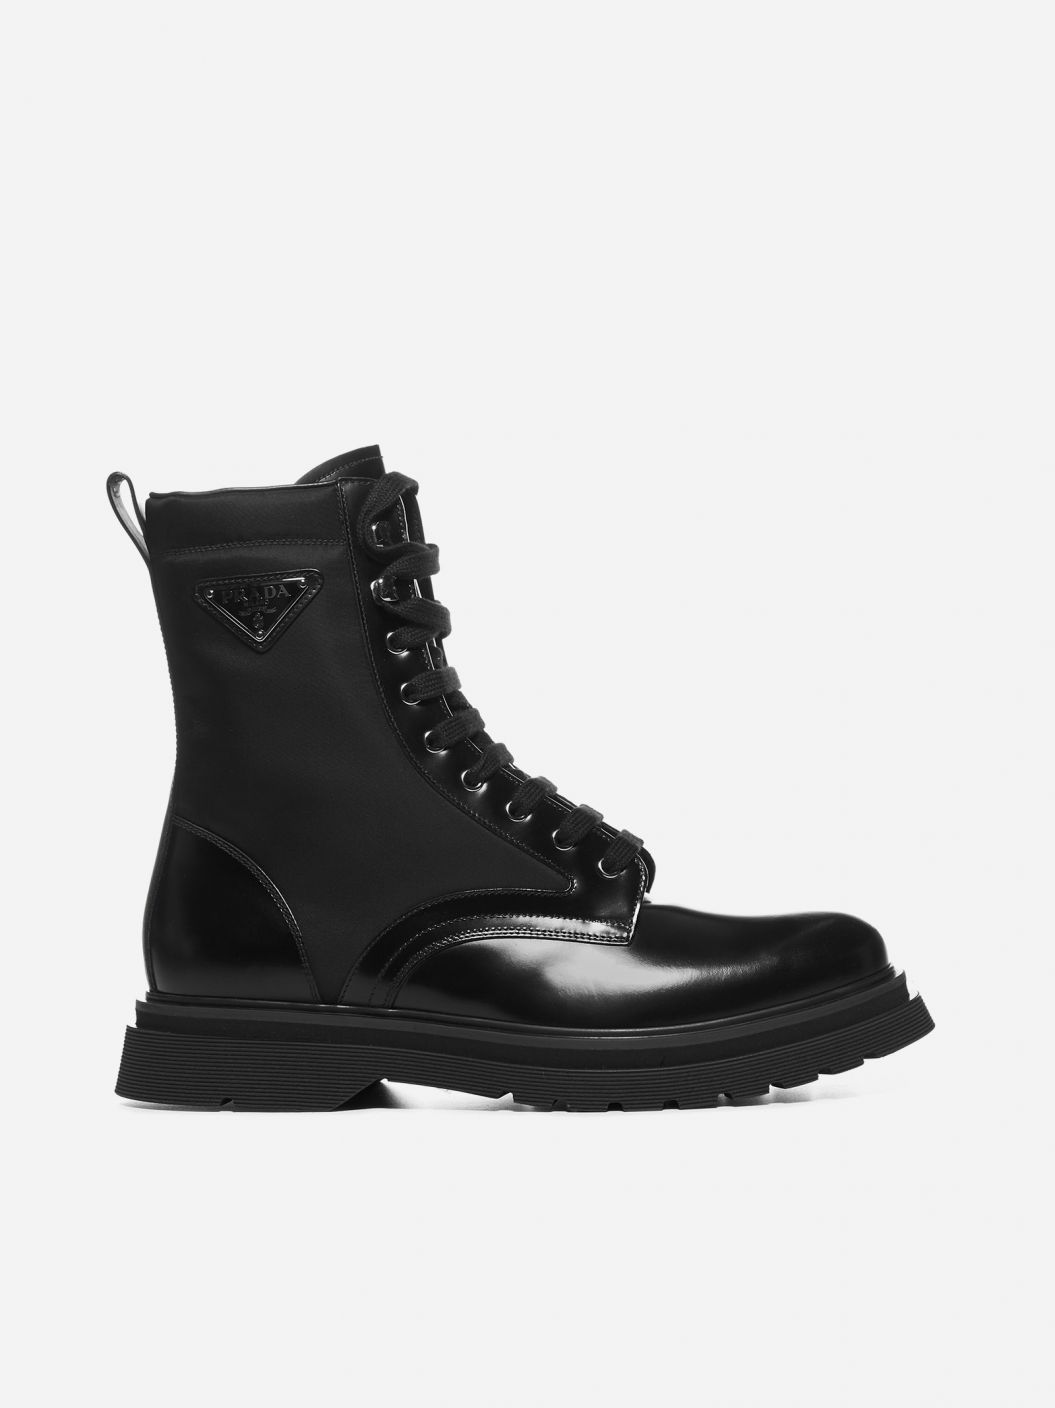 Leather and nylon combat boots